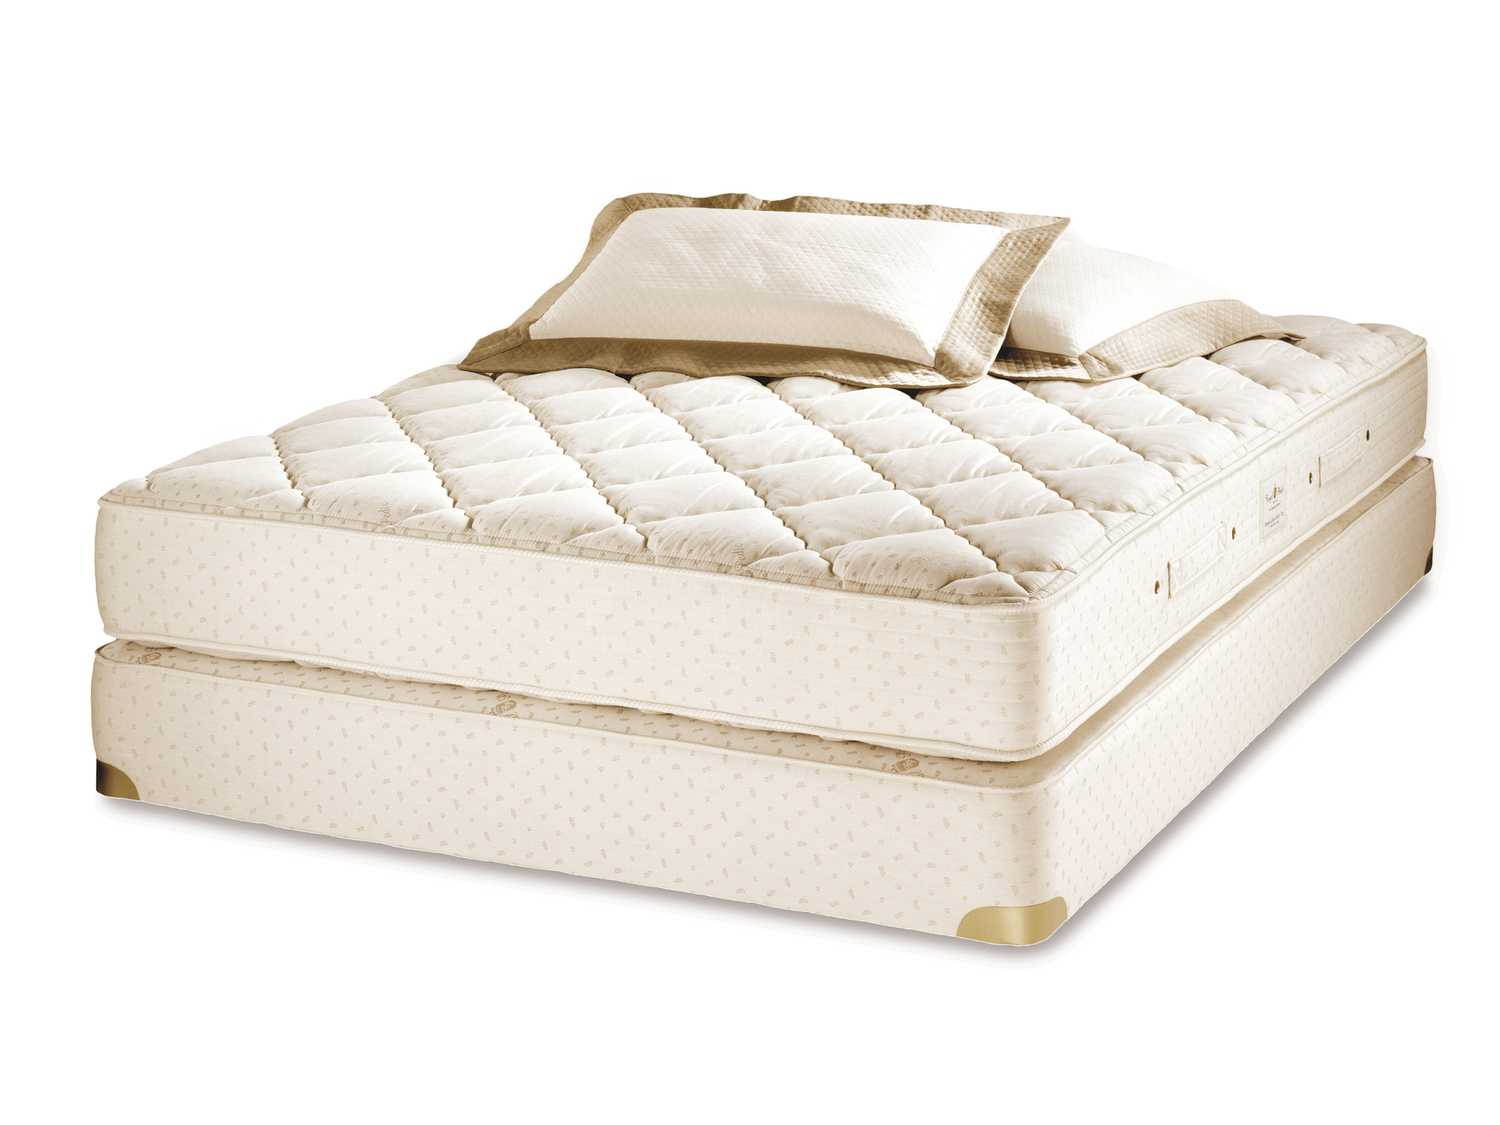 Royal Pedic Classic Latex Quilt Top Quilted 7 Zone